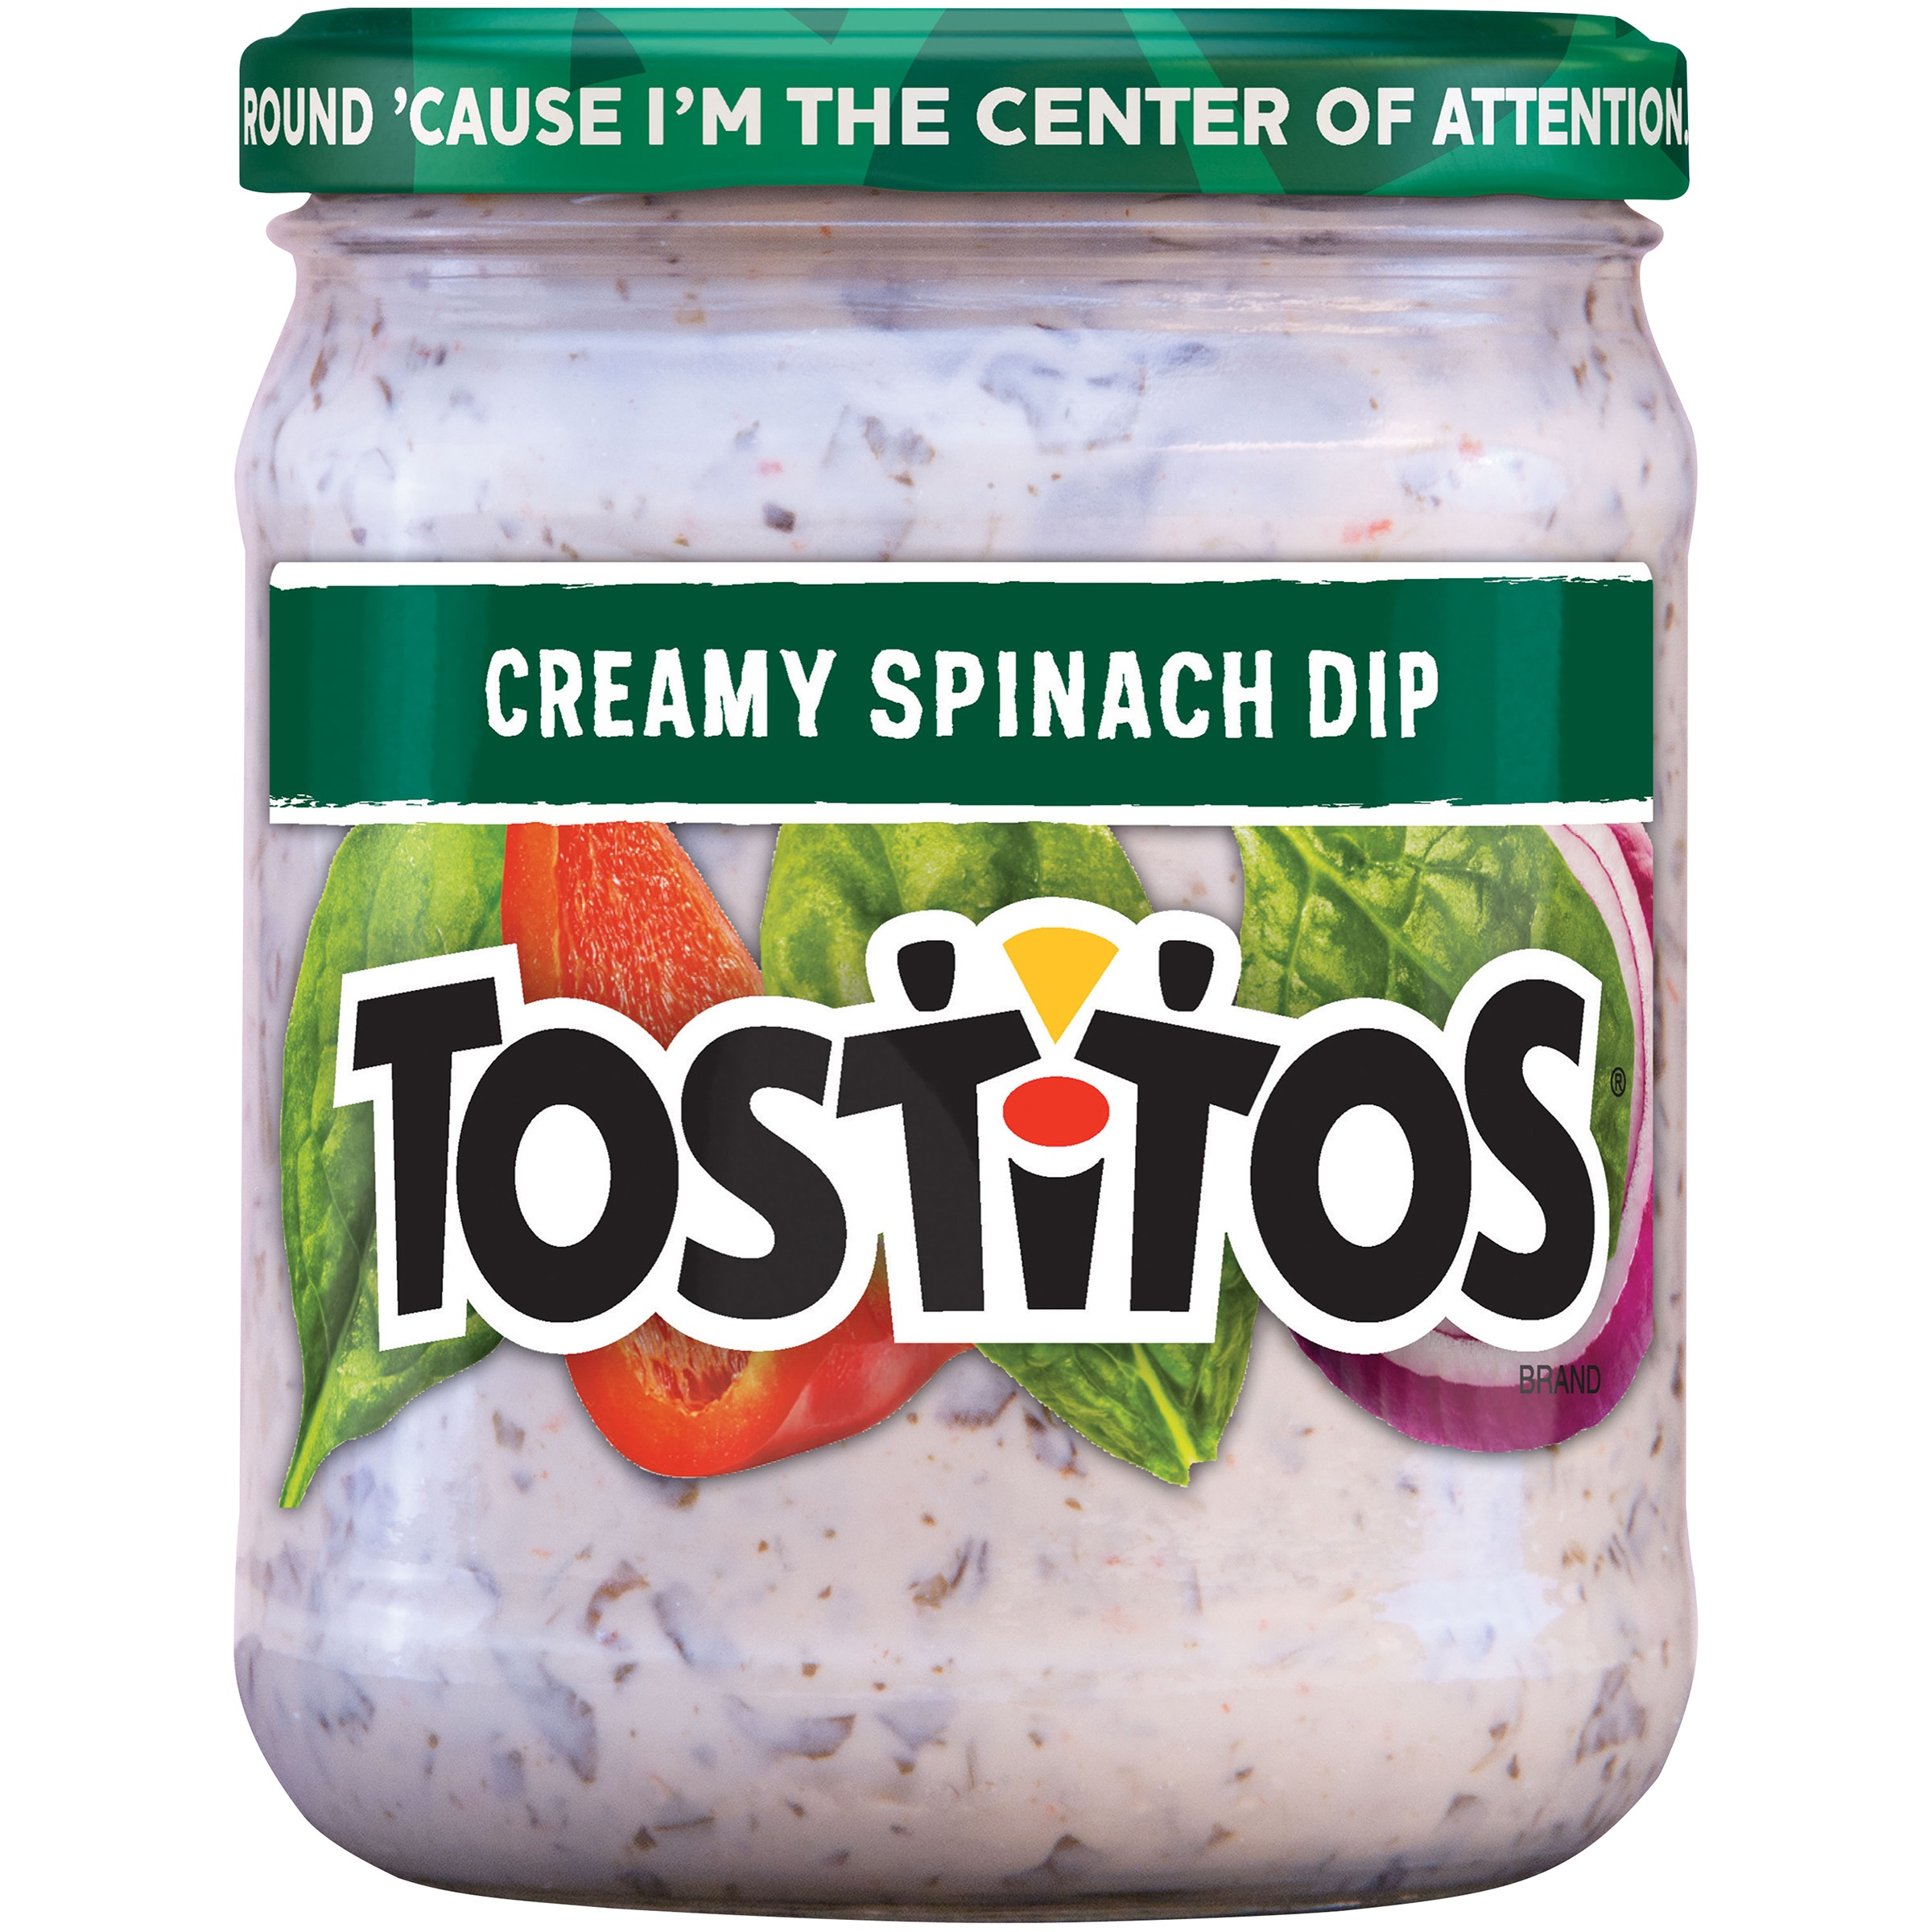 Tostitos Creamy Spinach Dip, 15 Oz